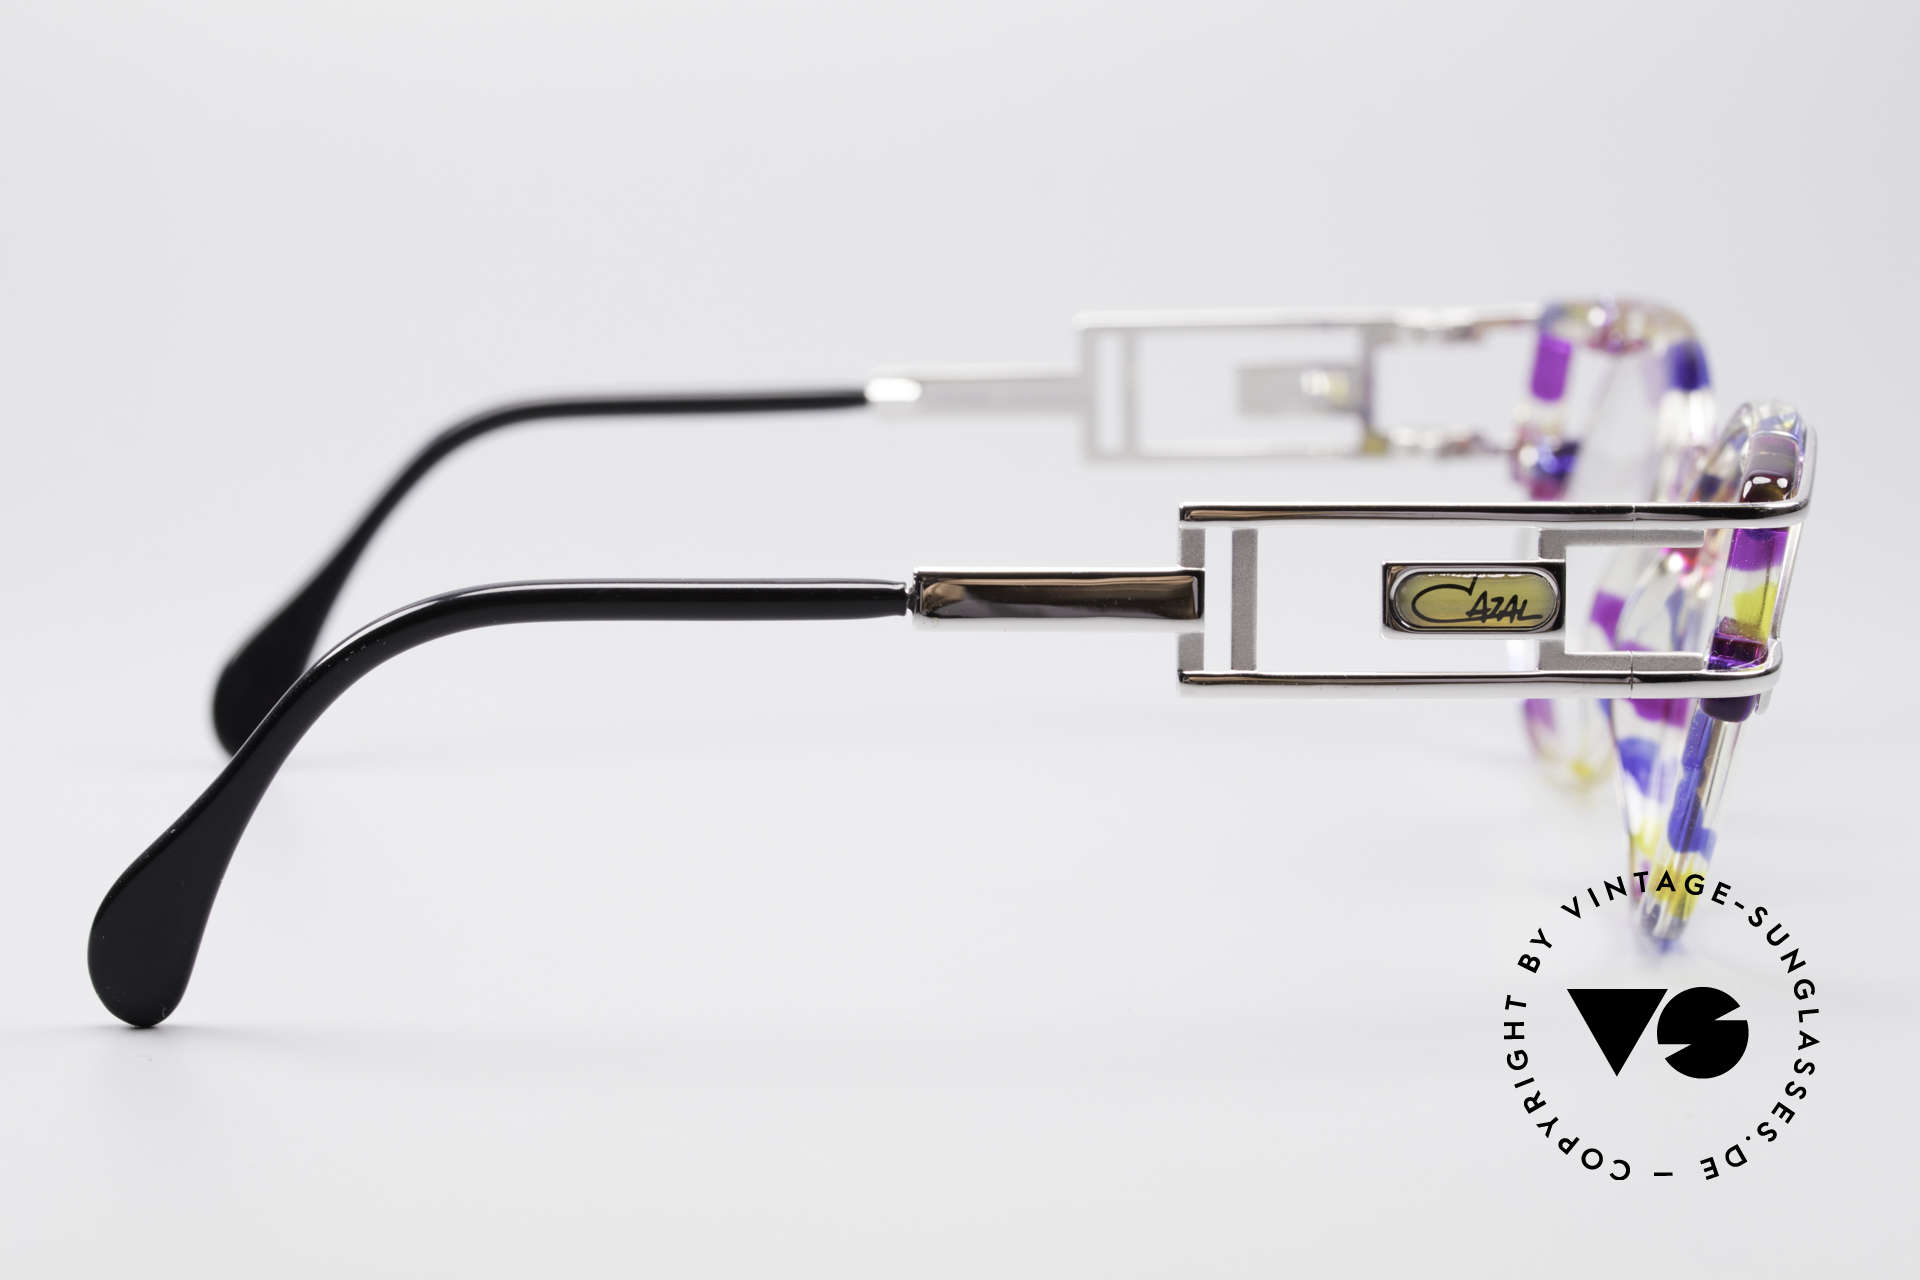 Cazal 353 Old School Hip Hop Frame, unworn, NOS (like all our rare vintage Cazal eyewear), Made for Men and Women